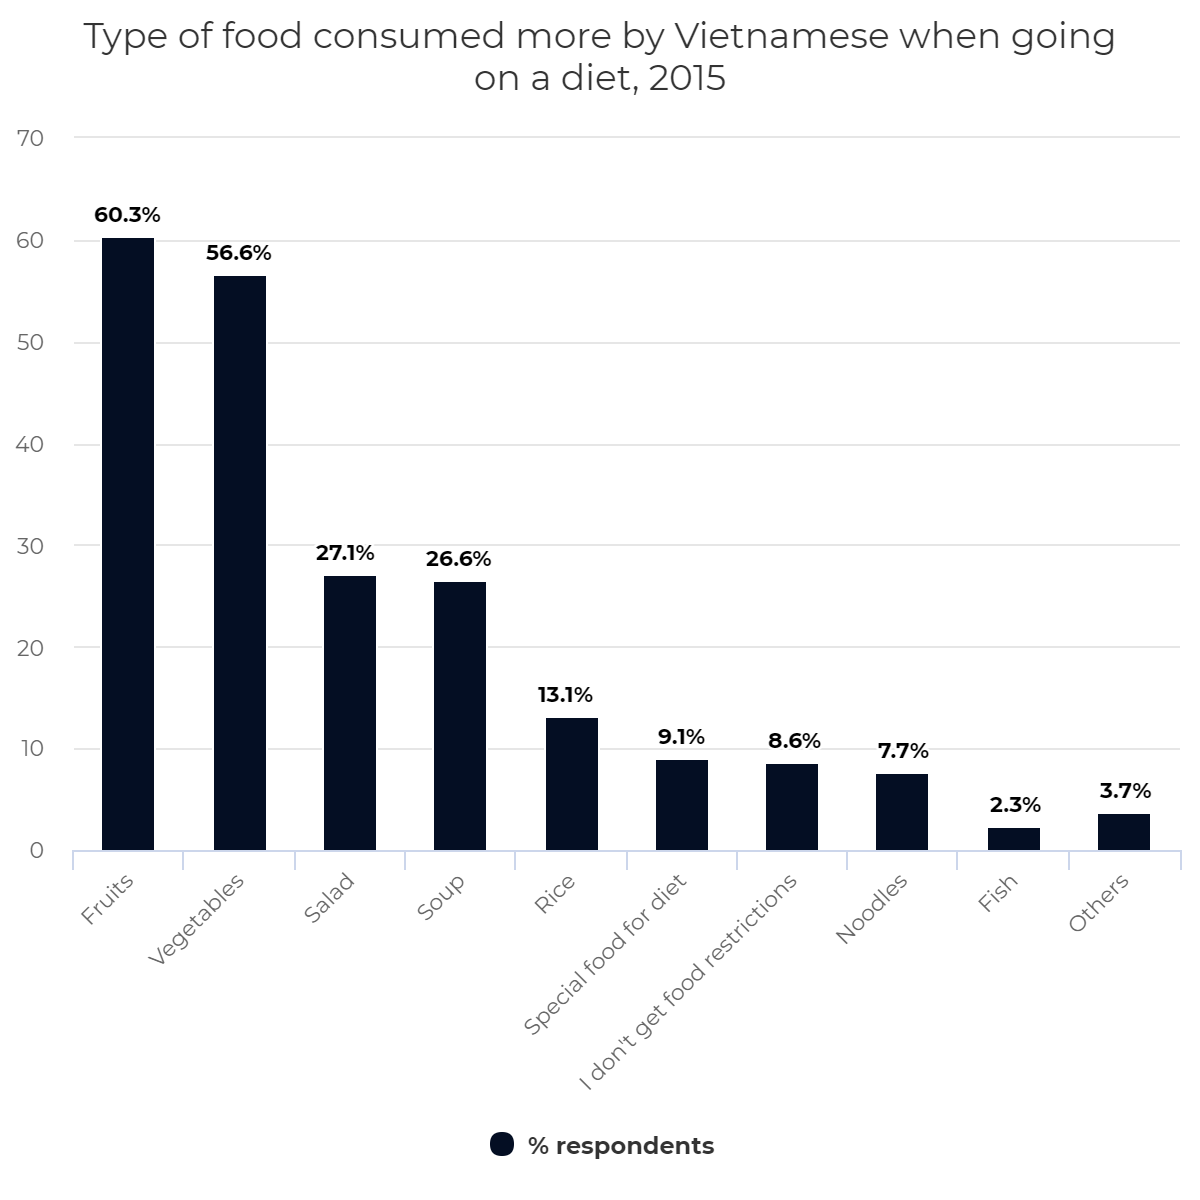 Type of food consumed more by Vietnamese when going on a diet, 2015